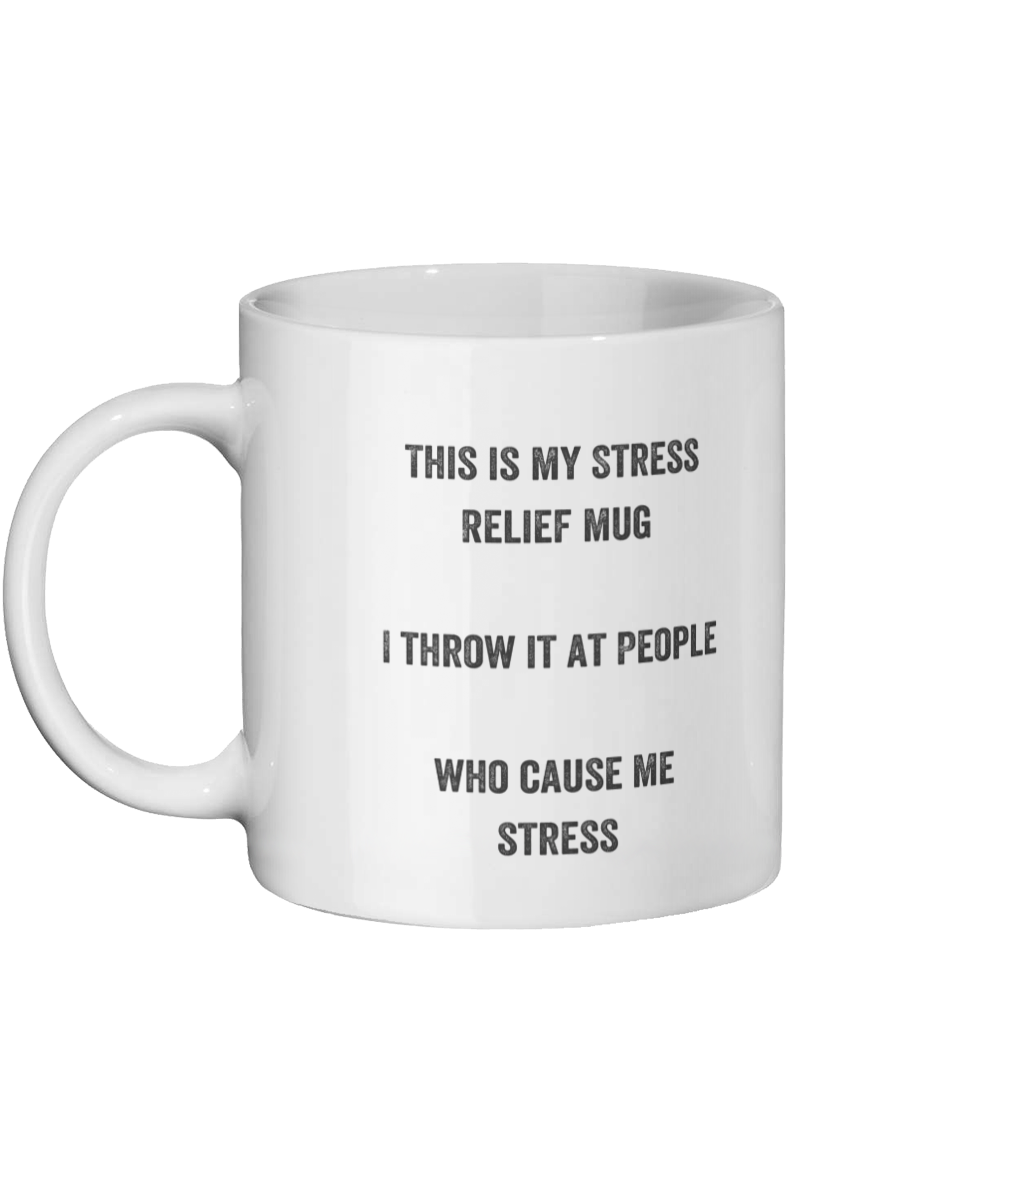 Stress Relief Mug. A mug with writing on the side which says this is my stress mug. I throw it at people who cause me stress.